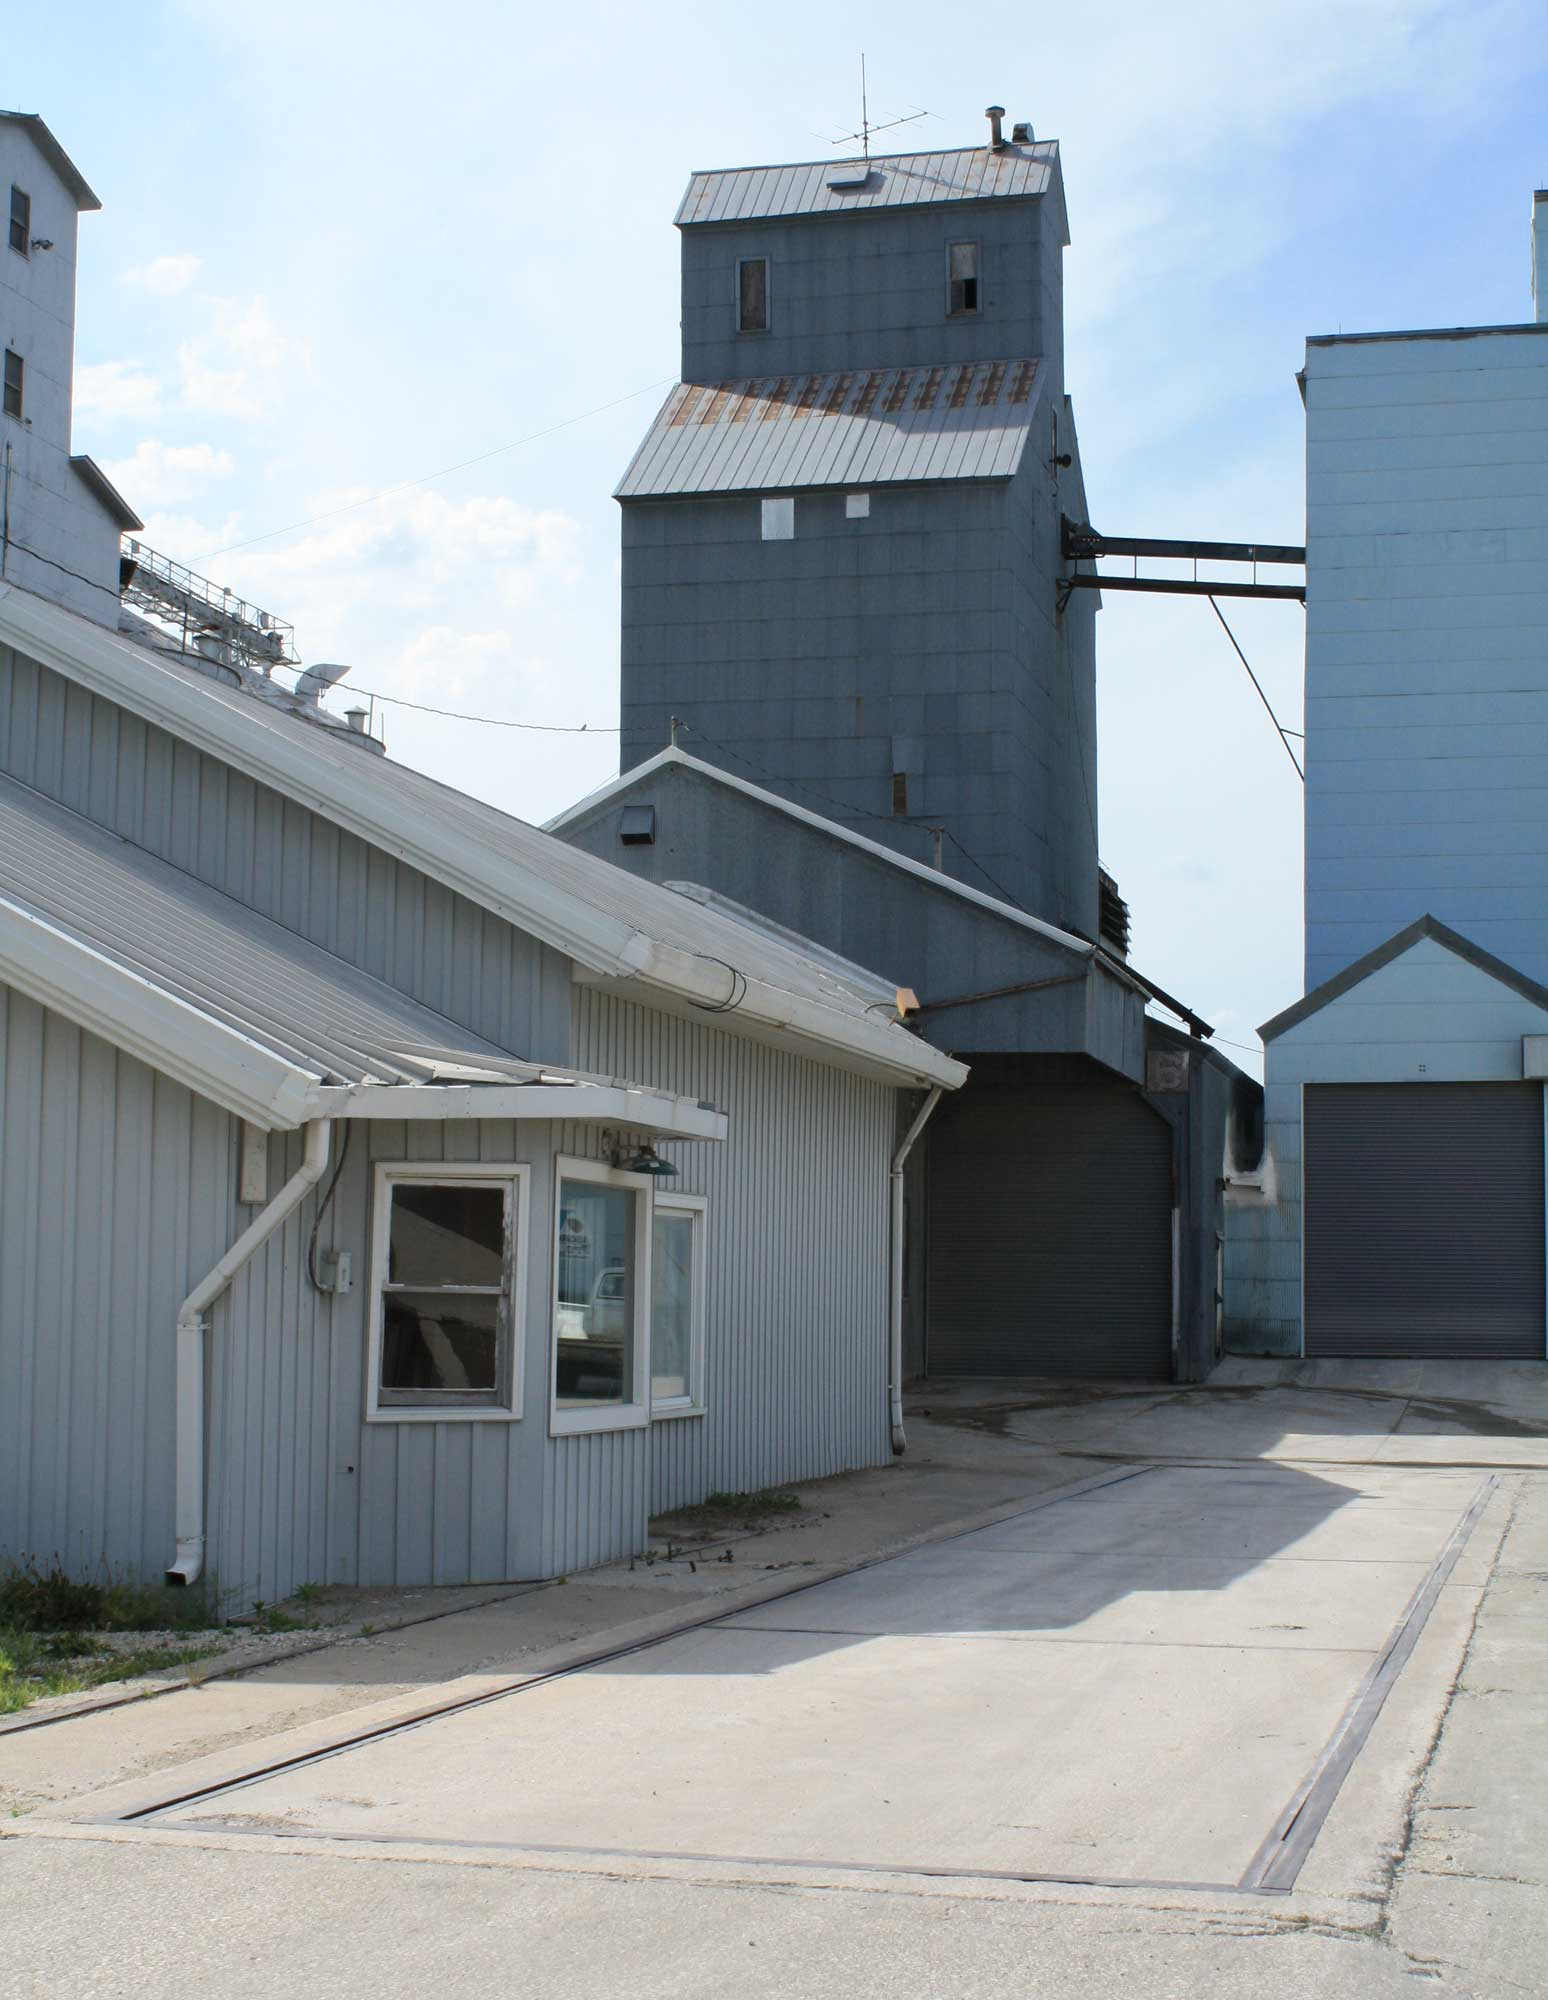 The former Farmers Co-op grain elevator office and scale, used until moving to the new location across the street in 2002.  The scale dial hung in the window and was used until the early/mid 1980's when it was replaced with a digital readout and printer system.  (Click photo to enlarge.).